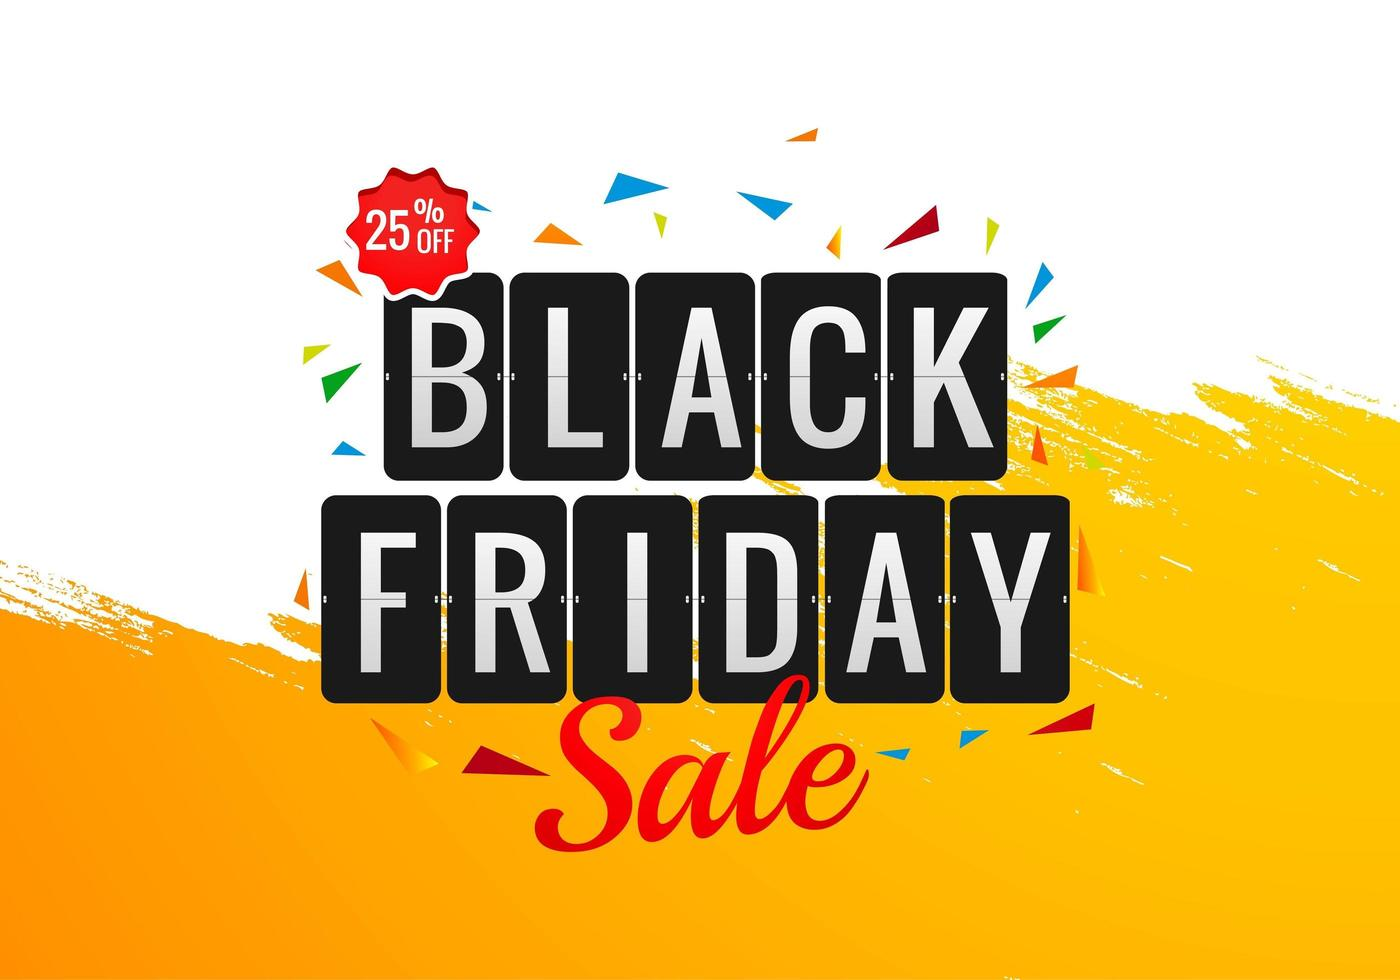 Black Friday Holiday Sale Banner Template Design vector